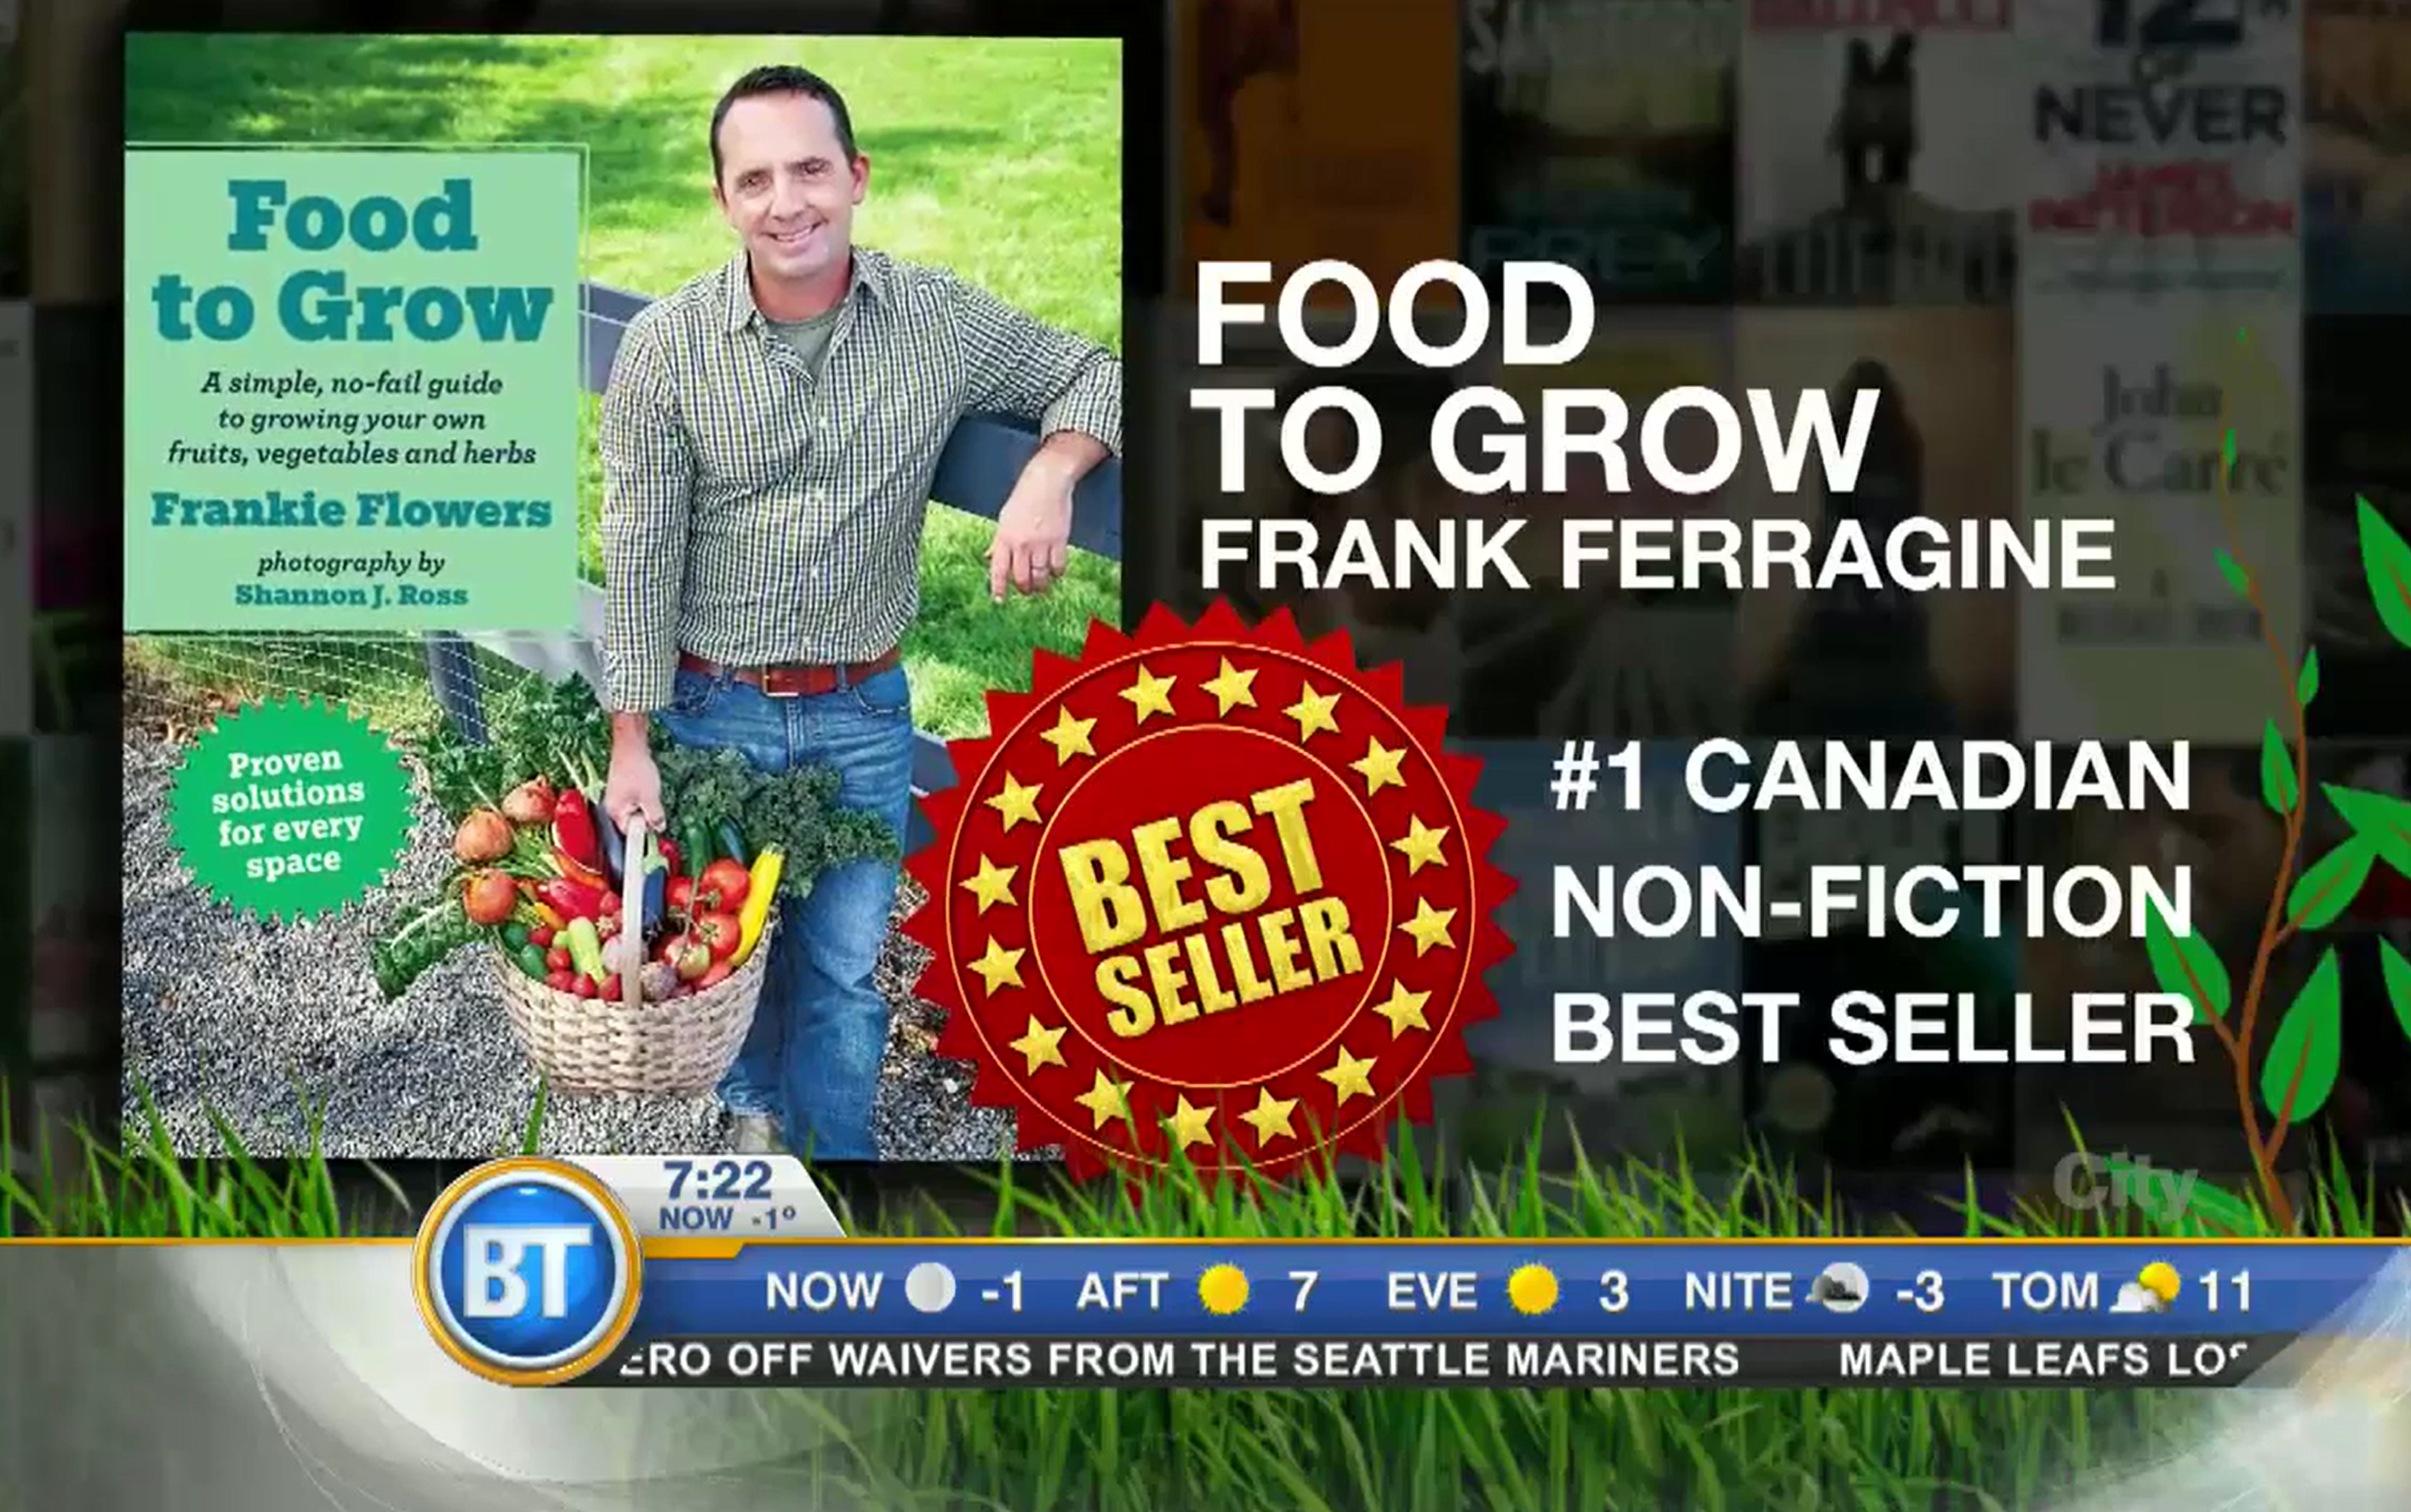 Food to Grow - Best selling Canadian Non-fiction book